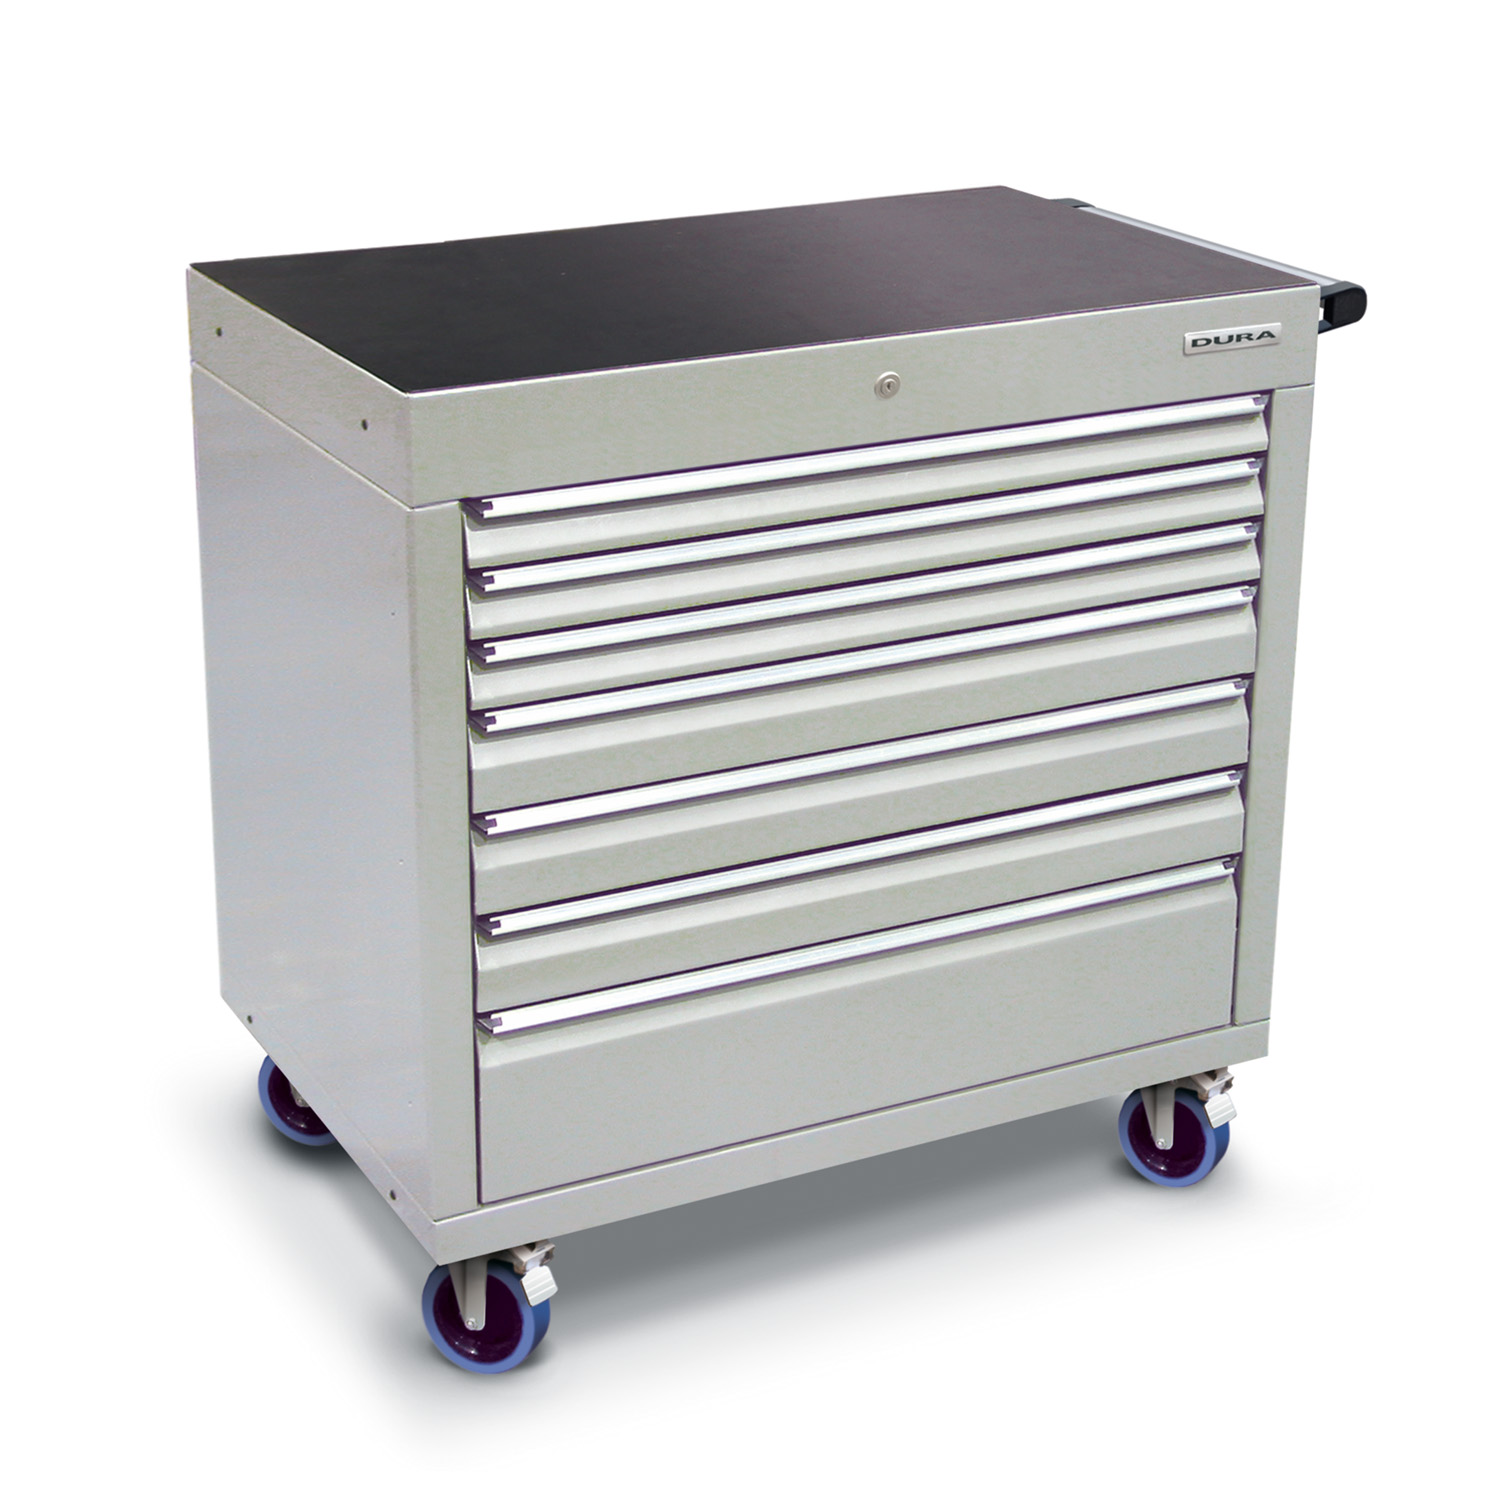 900 series cabinet with 7 drawers (3 slim, 3 medium, 1 large) and castors